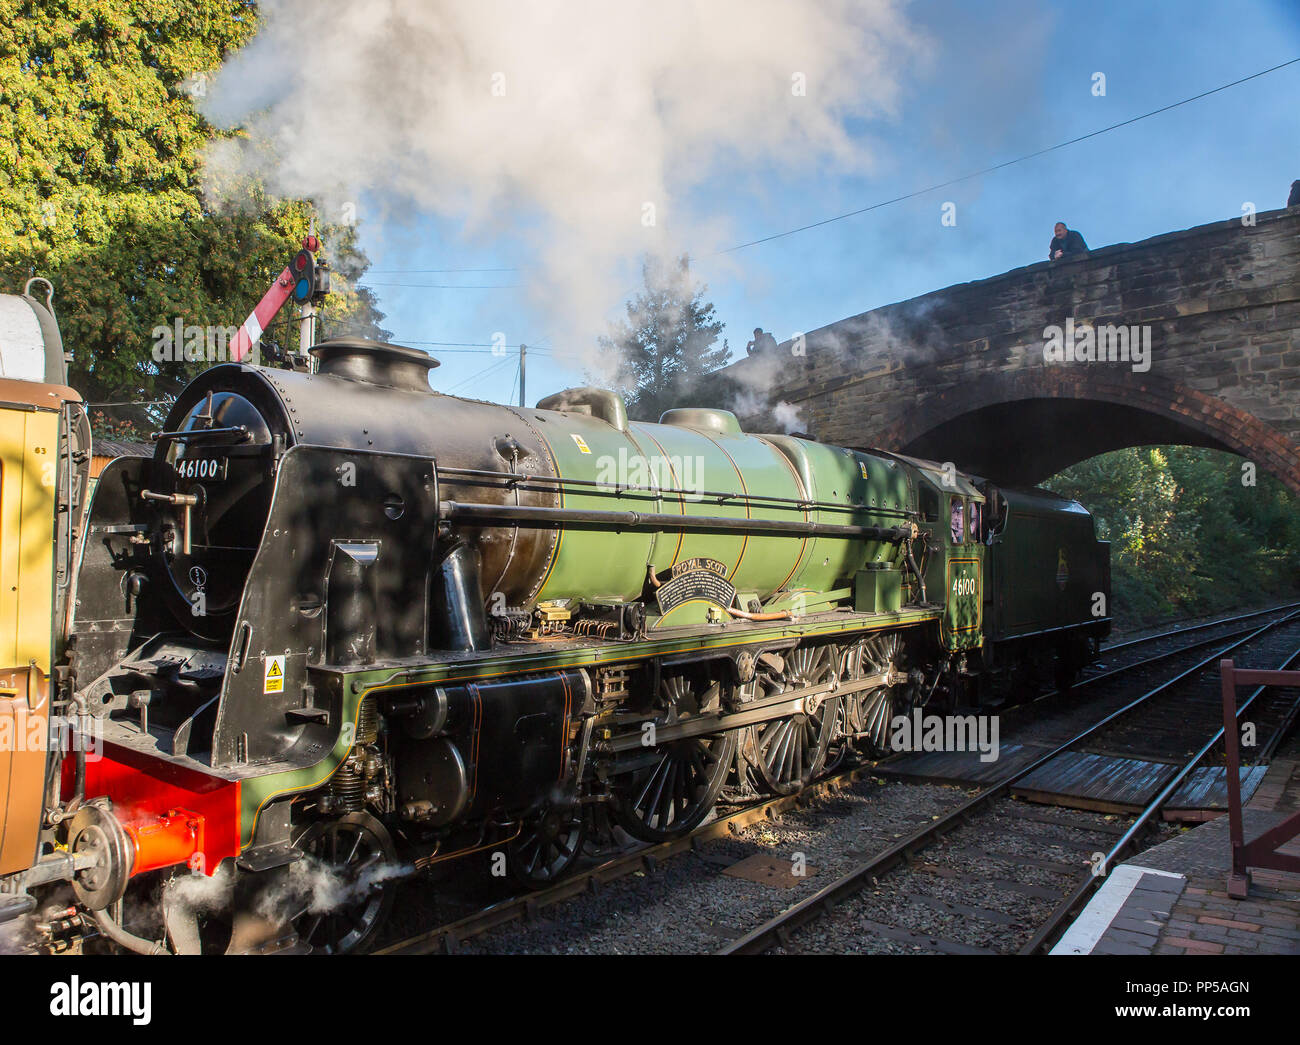 Kidderminster, UK. 23rd September, 2018. Visiting steam giants at Severn Valley Railway's Autumn Steam Gala are seen at last in all their shining glory. Guest locomotives, the Duchess of Sutherland No. 6233 and Royal Scot No. 46100 spend the final day of their working holiday travelling on the heritage line between Kidderminster and Bridgnorth being admired by railway enthusiasts of all ages. Credit: Lee Hudson/Alamy Live News - Stock Image